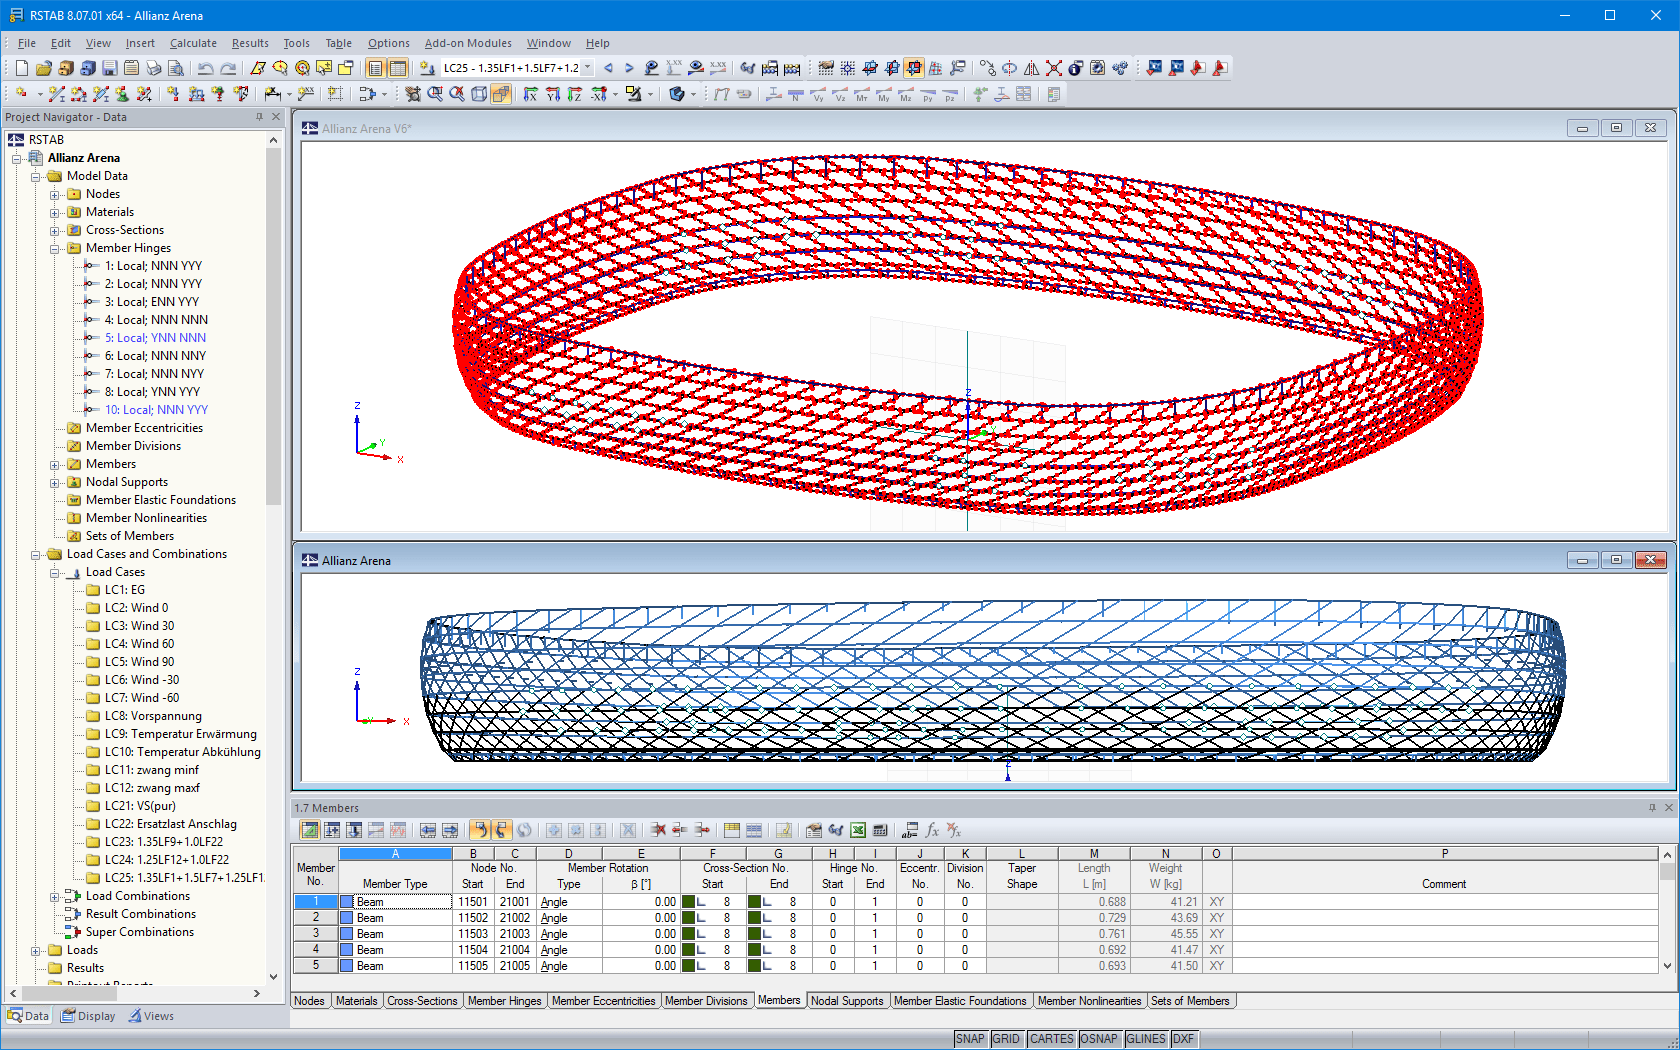 D beam structure model of Allianz Arena in RSTAB (© IPL GmbH)